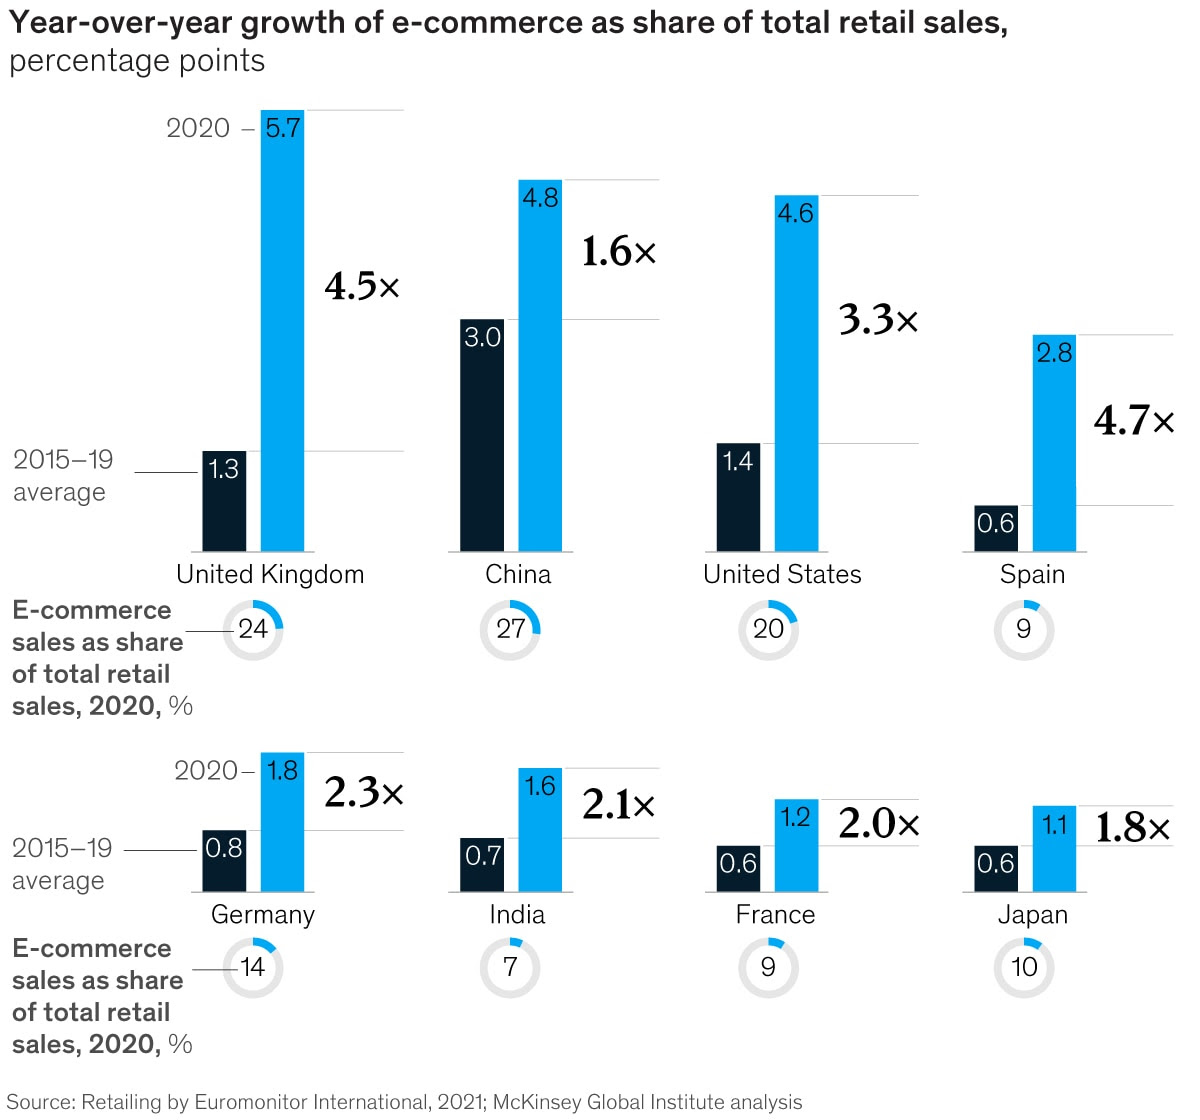 Year-over-year growth of e-commerce as sharet of total retail sales, percentage points exhibit